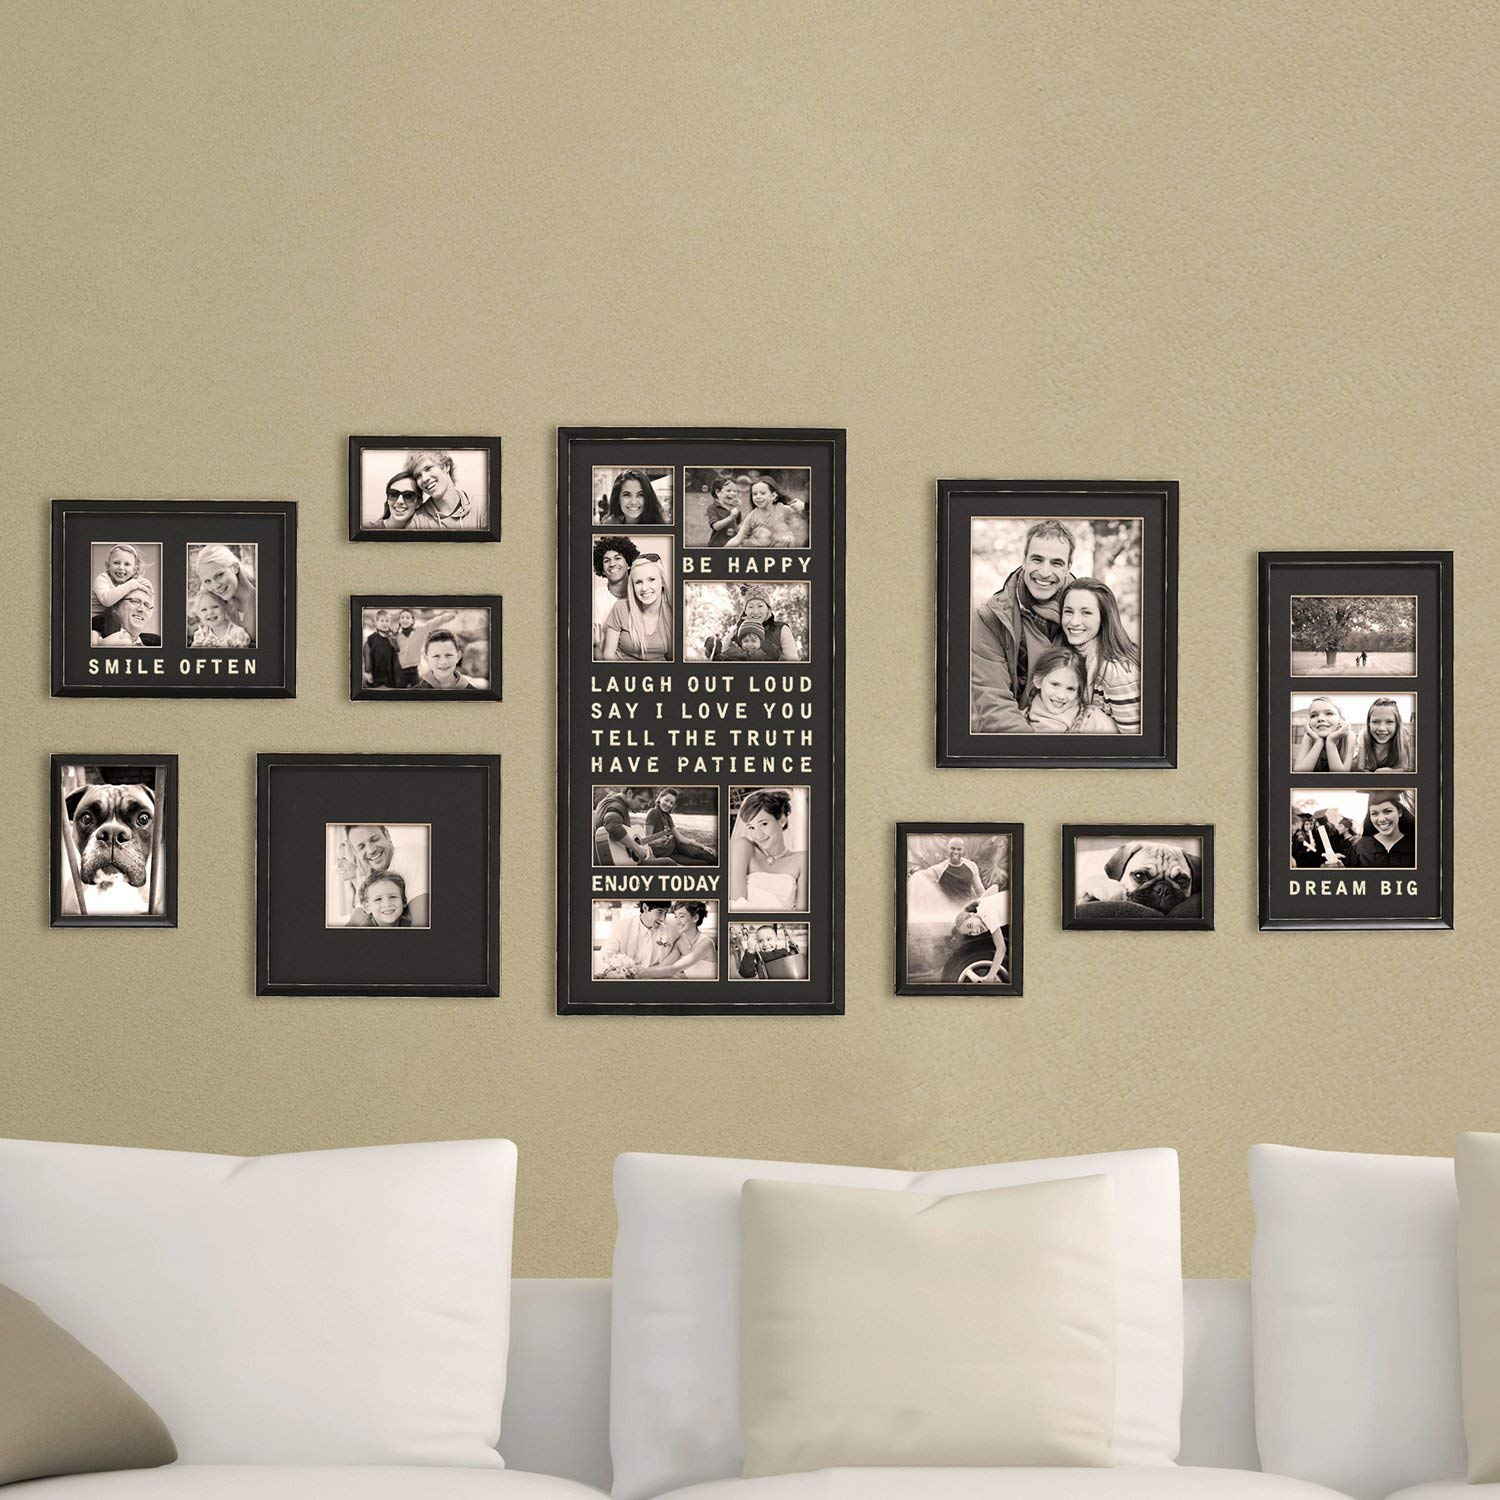 Jerry & Maggie - Luxury Typography Sets | Photo Frame | Wall Decor Bar - Wall Decor Combination - Gold Black PVC Picture Large Frame Selfie Gallery Collage Wall Hanging System - Wall Mounting Design by Jerry & Maggie